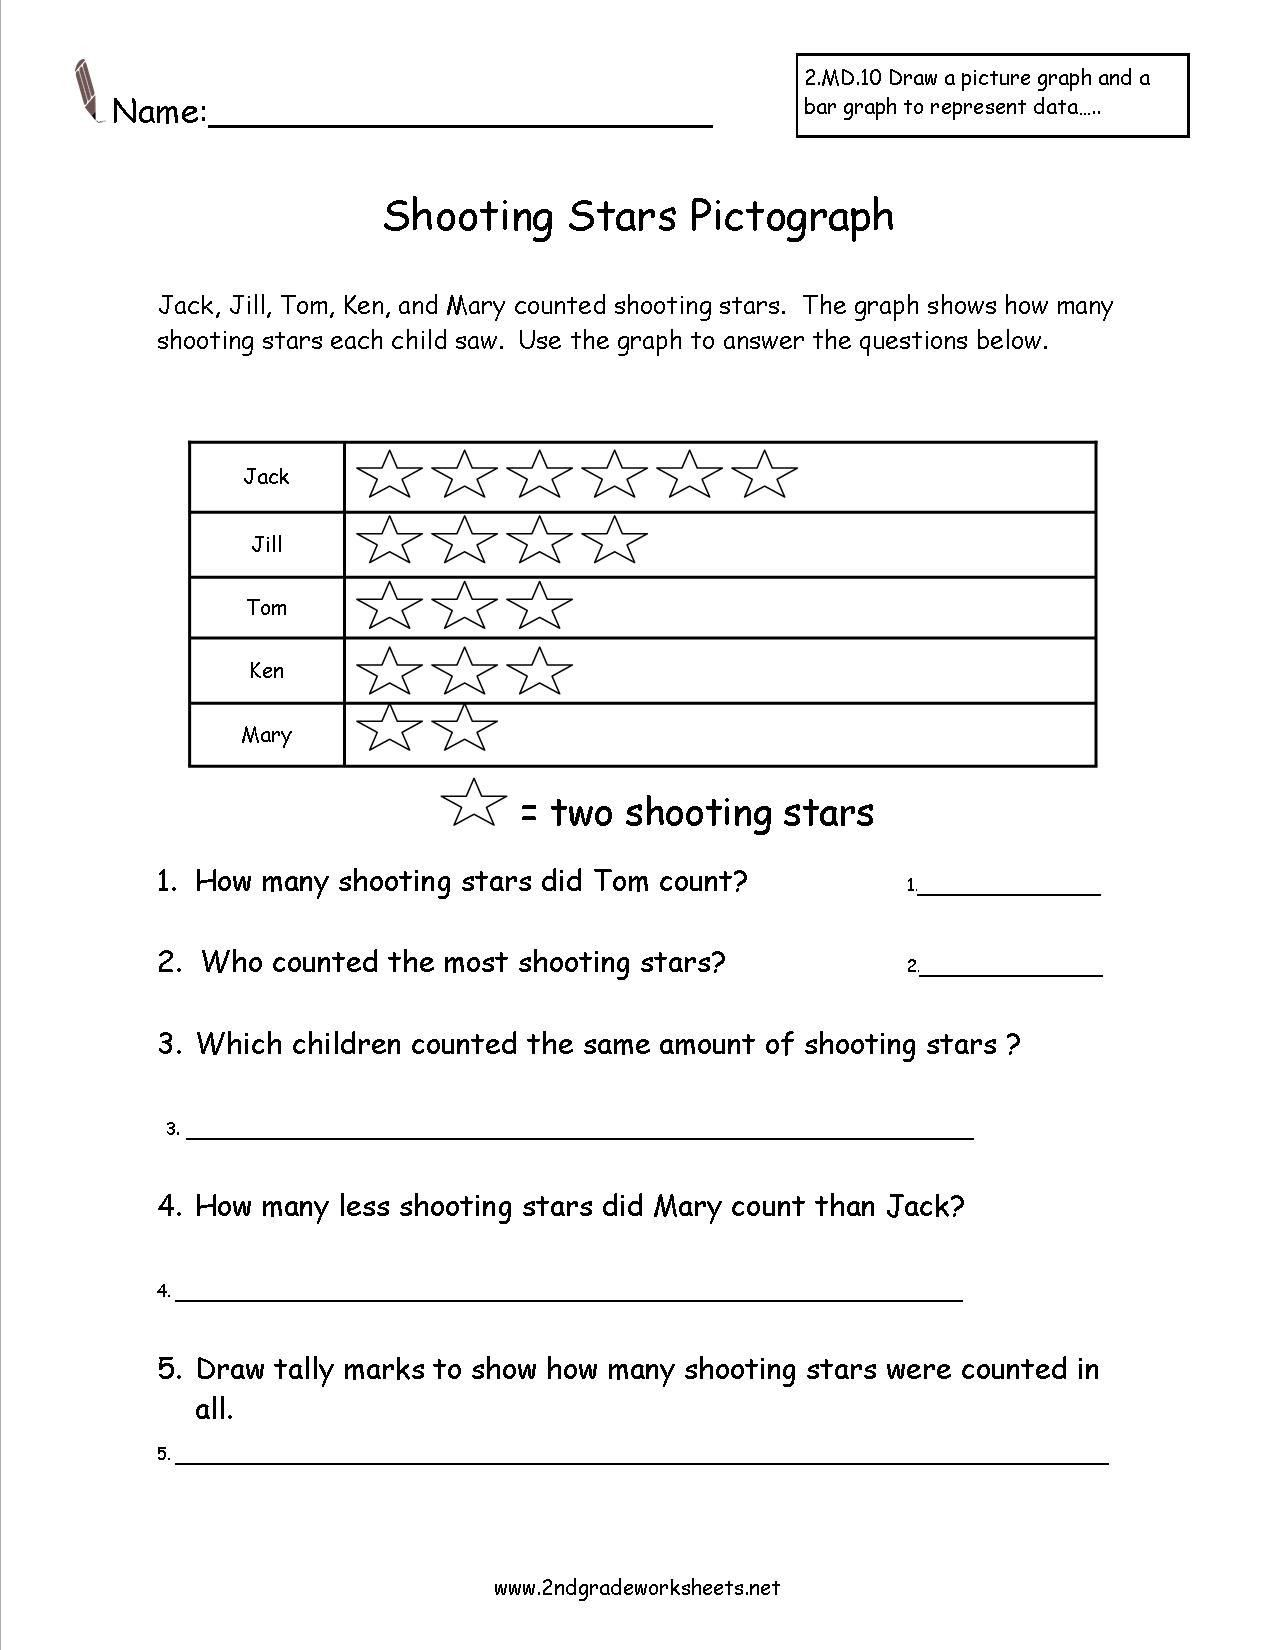 hight resolution of Pictograph Worksheets 2nd Grade Shooting Stars Pictograph Worksheet   Third grade  worksheets